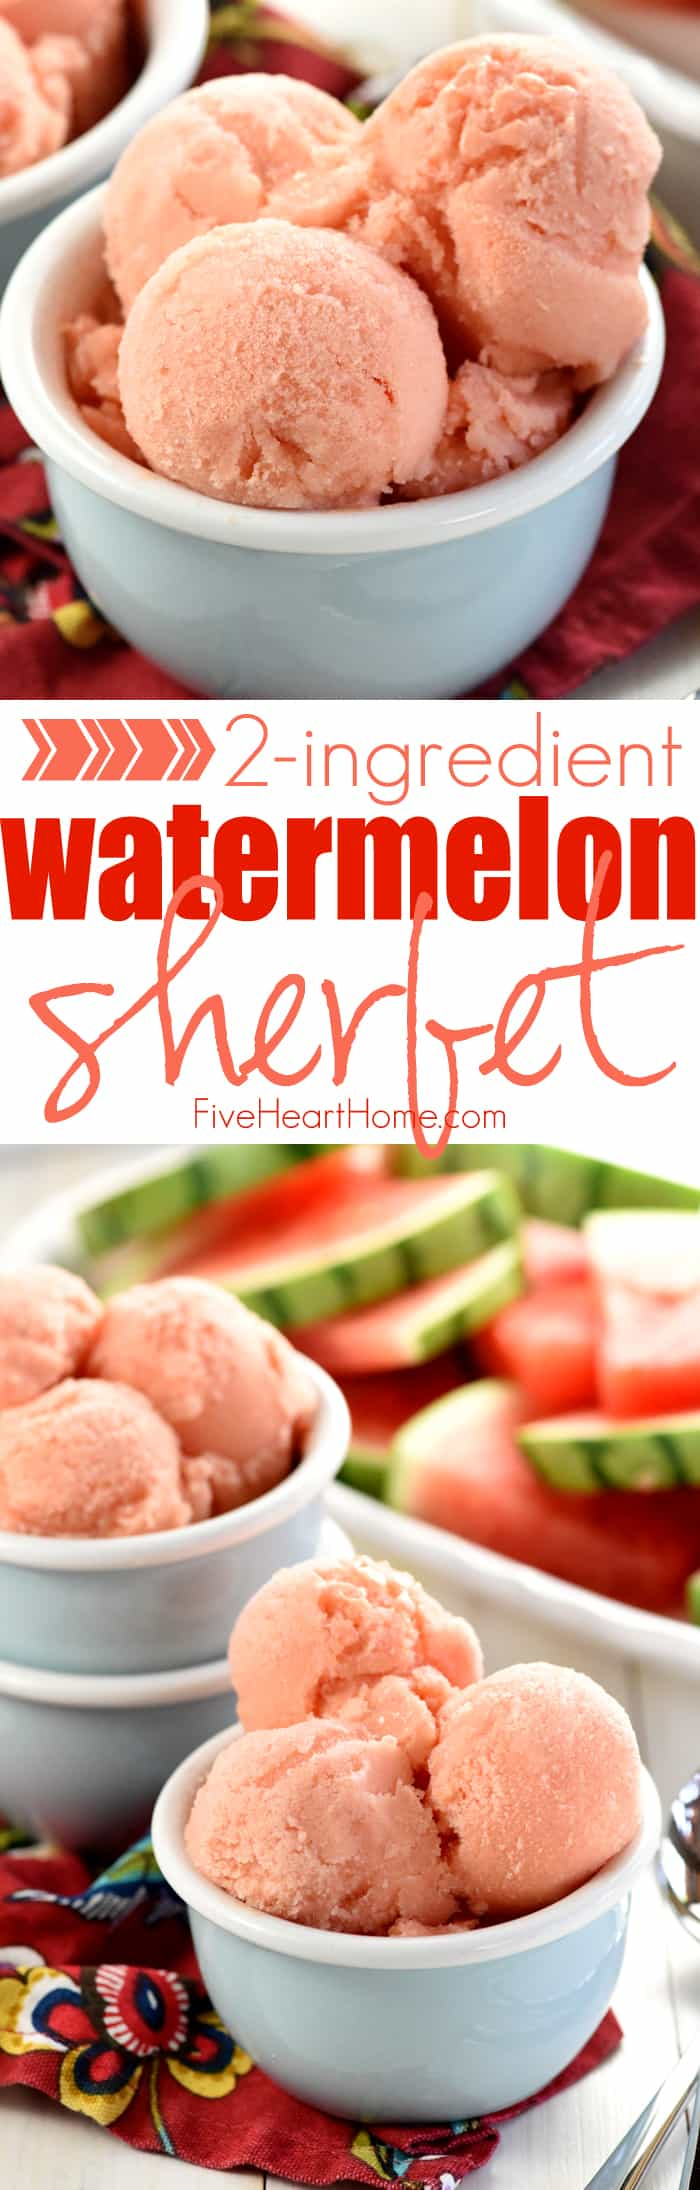 2-Ingredient Watermelon Sherbet Collage with Text Overlay